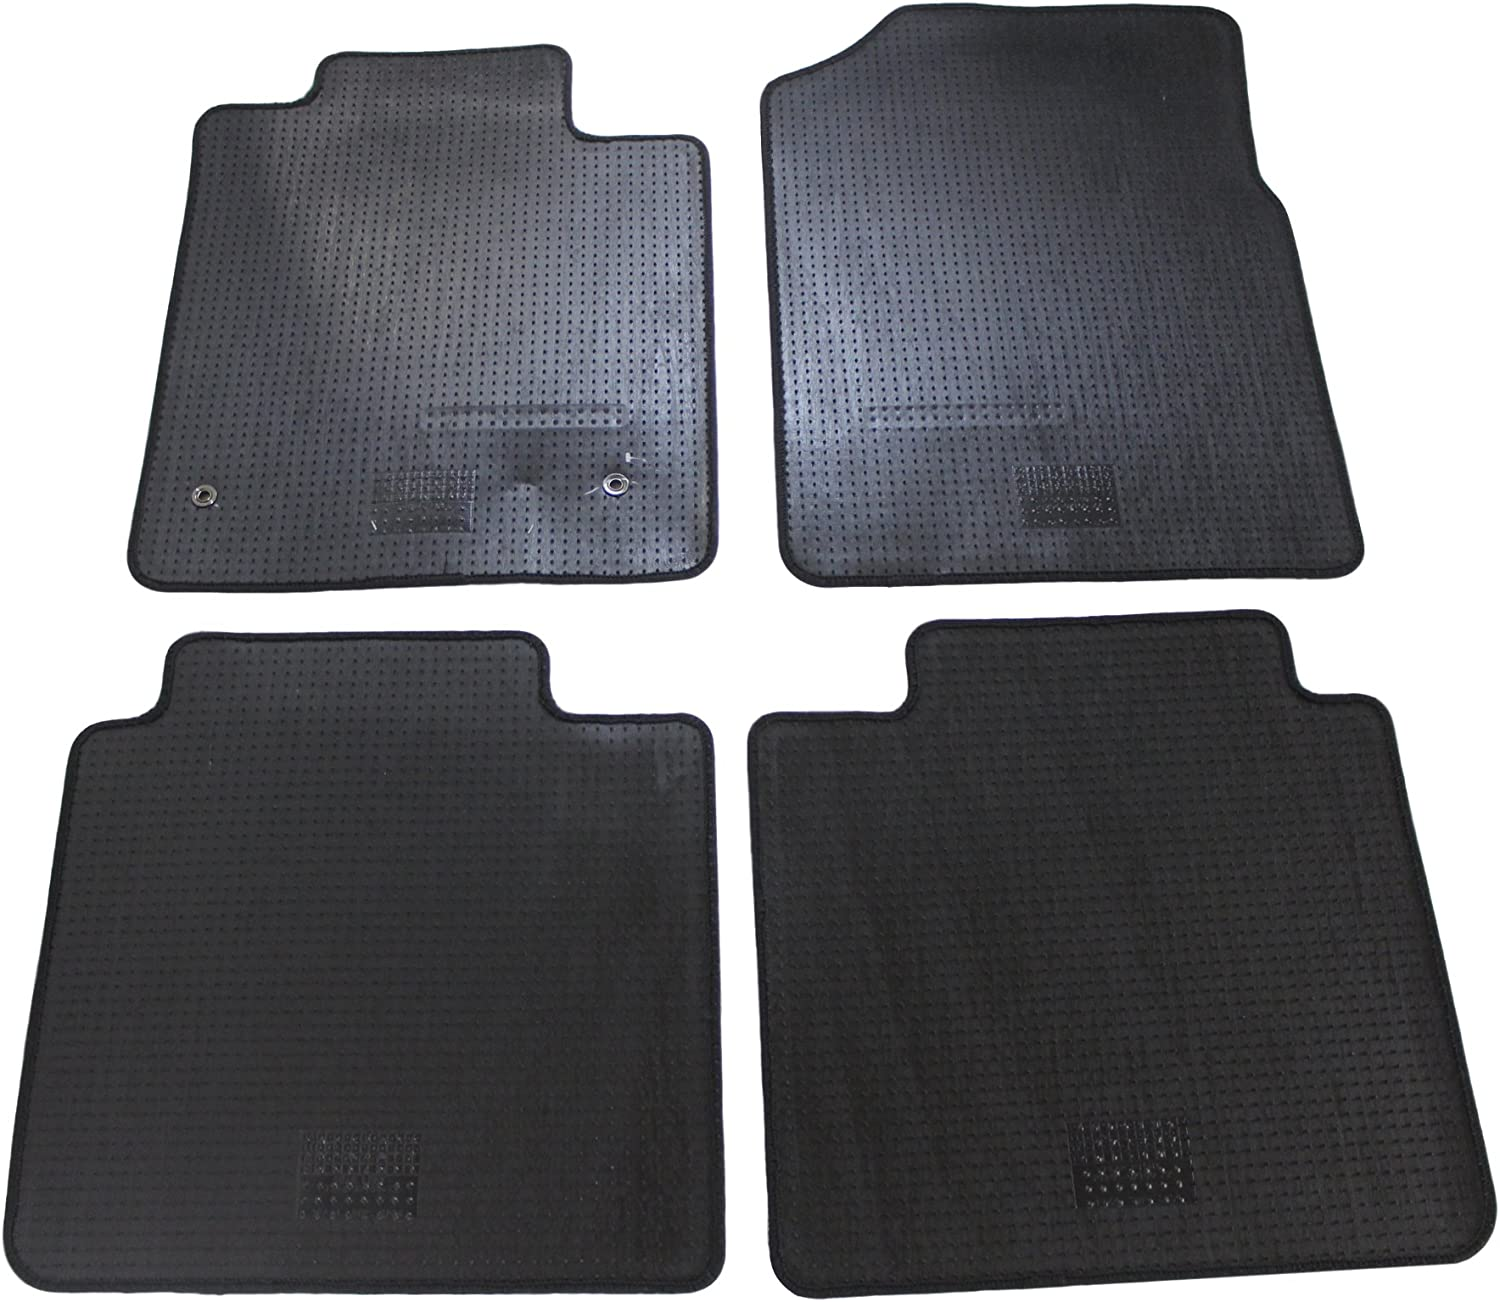 2018 GGBAILEY D60193-S1A-GY-LP Custom Fit Car Mats for 2017 2019 Lincoln Continental Grey Loop Driver Passenger /& Rear Floor